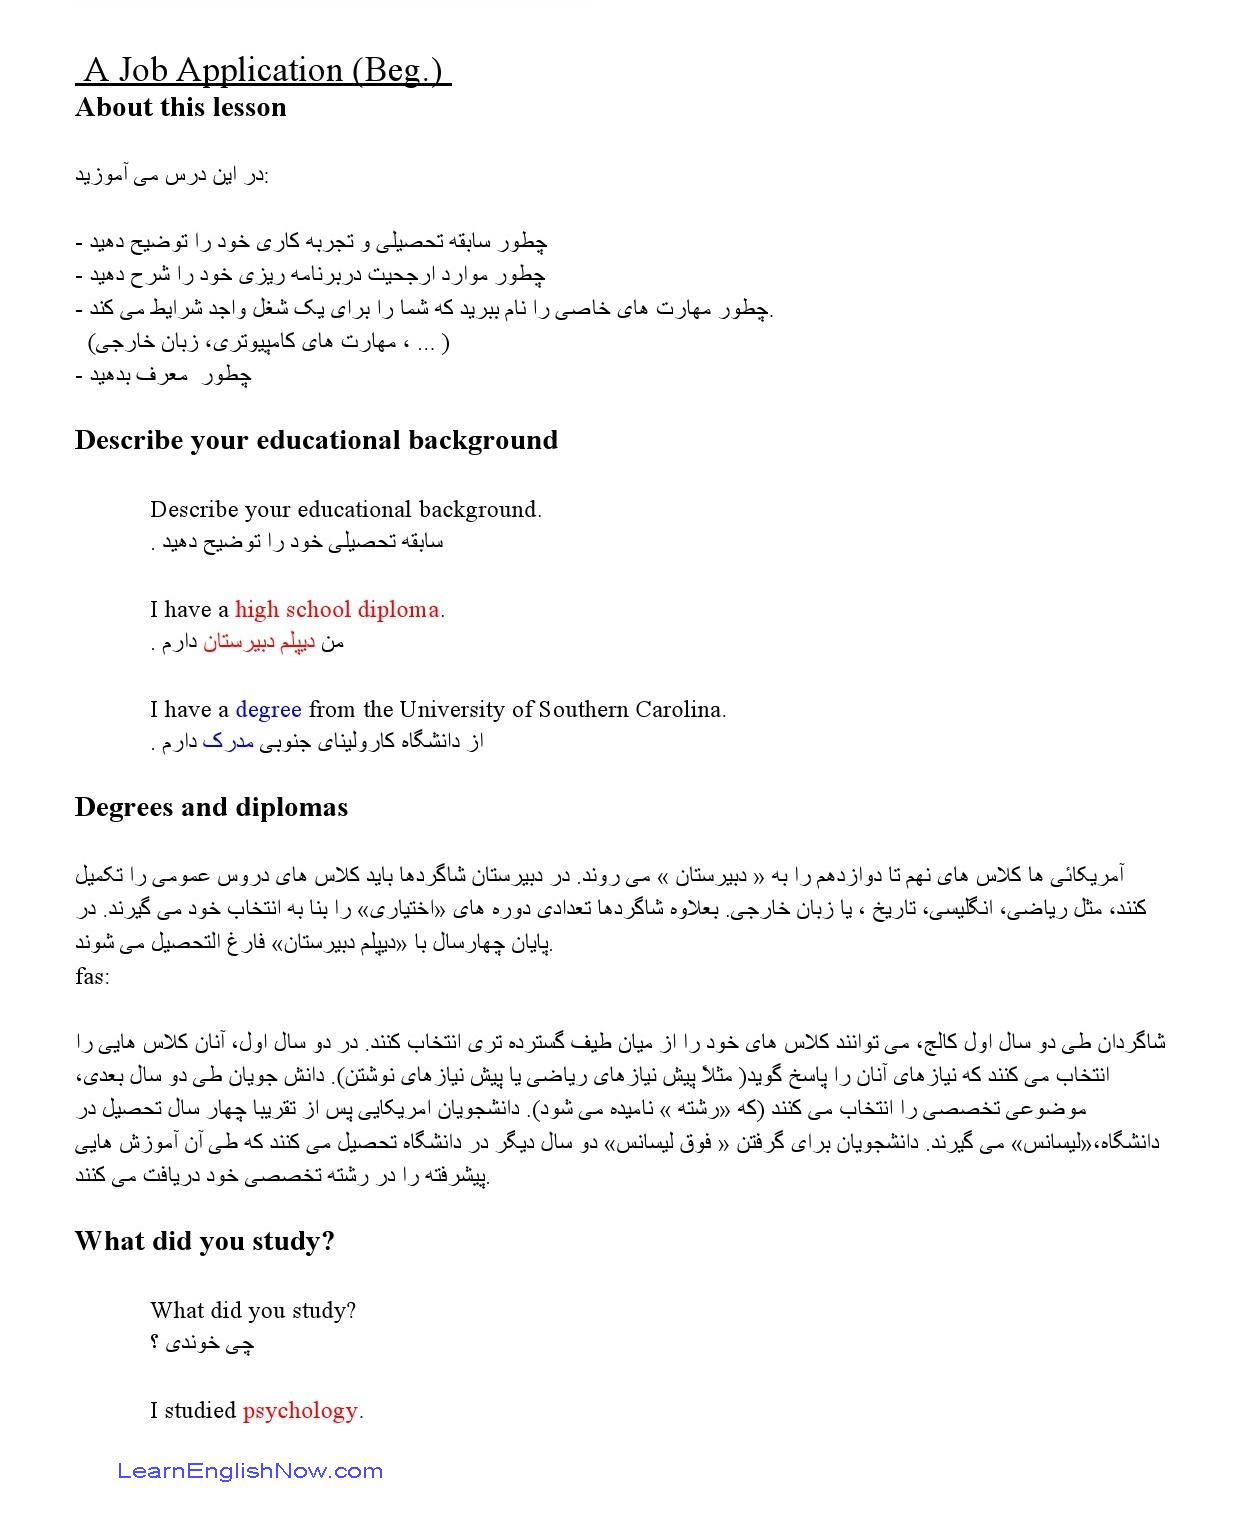 Application For Employment Wikipedia A Job Application Beg English For A Special Purpose